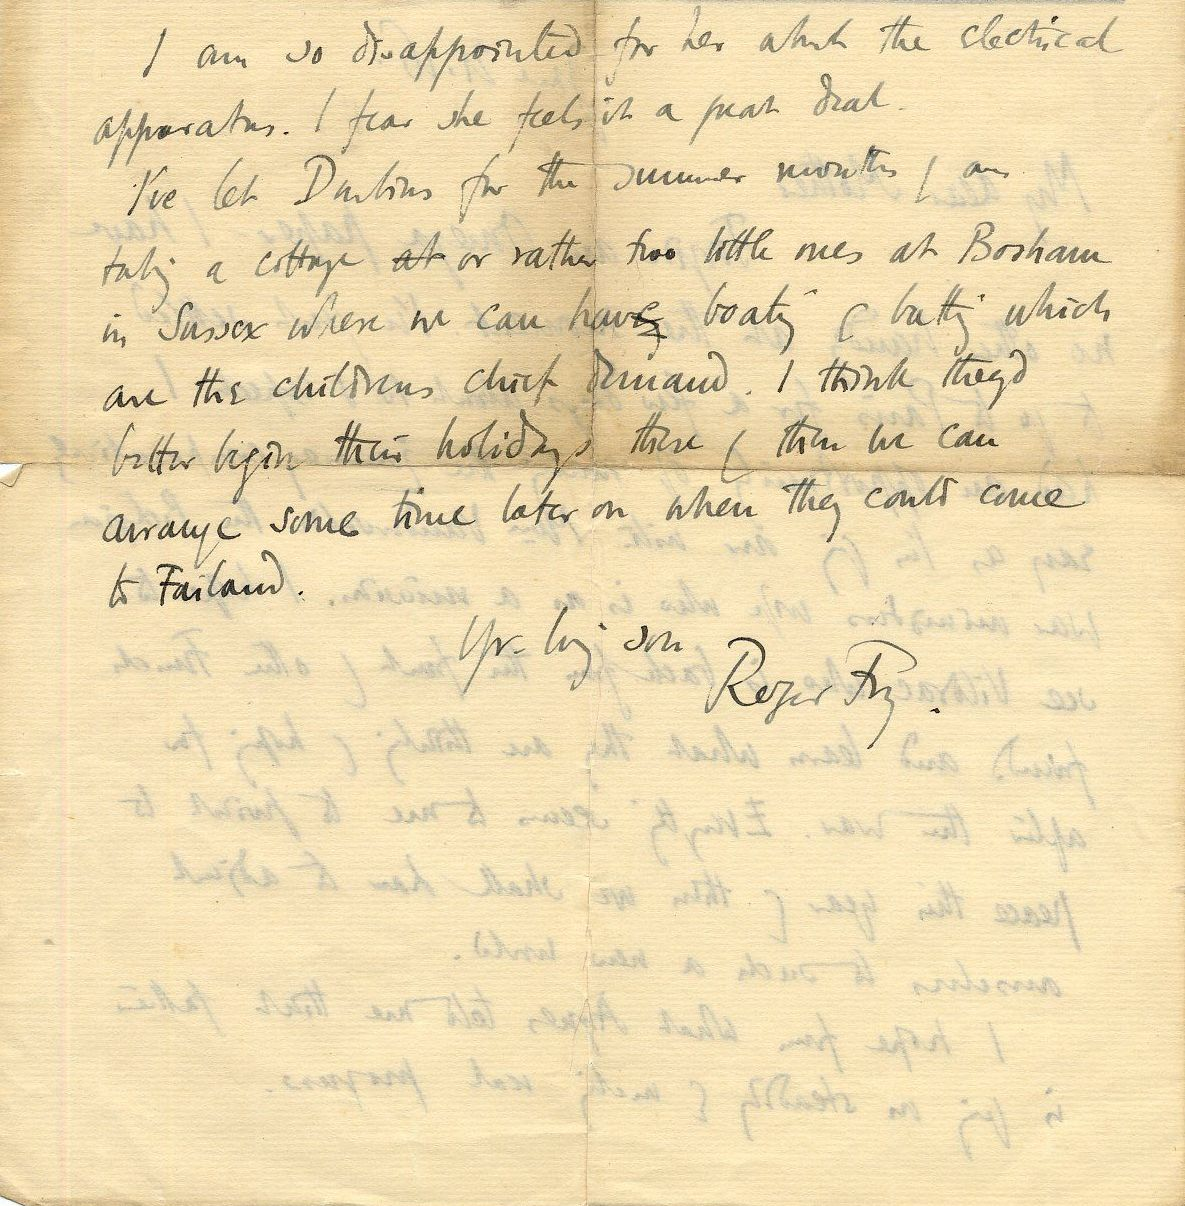 Letter from Roger Fry to his mother, 21 June 1916, mentioning his planned visit to Paris. [REF/3/58/38 - Omega letterhead removed]]